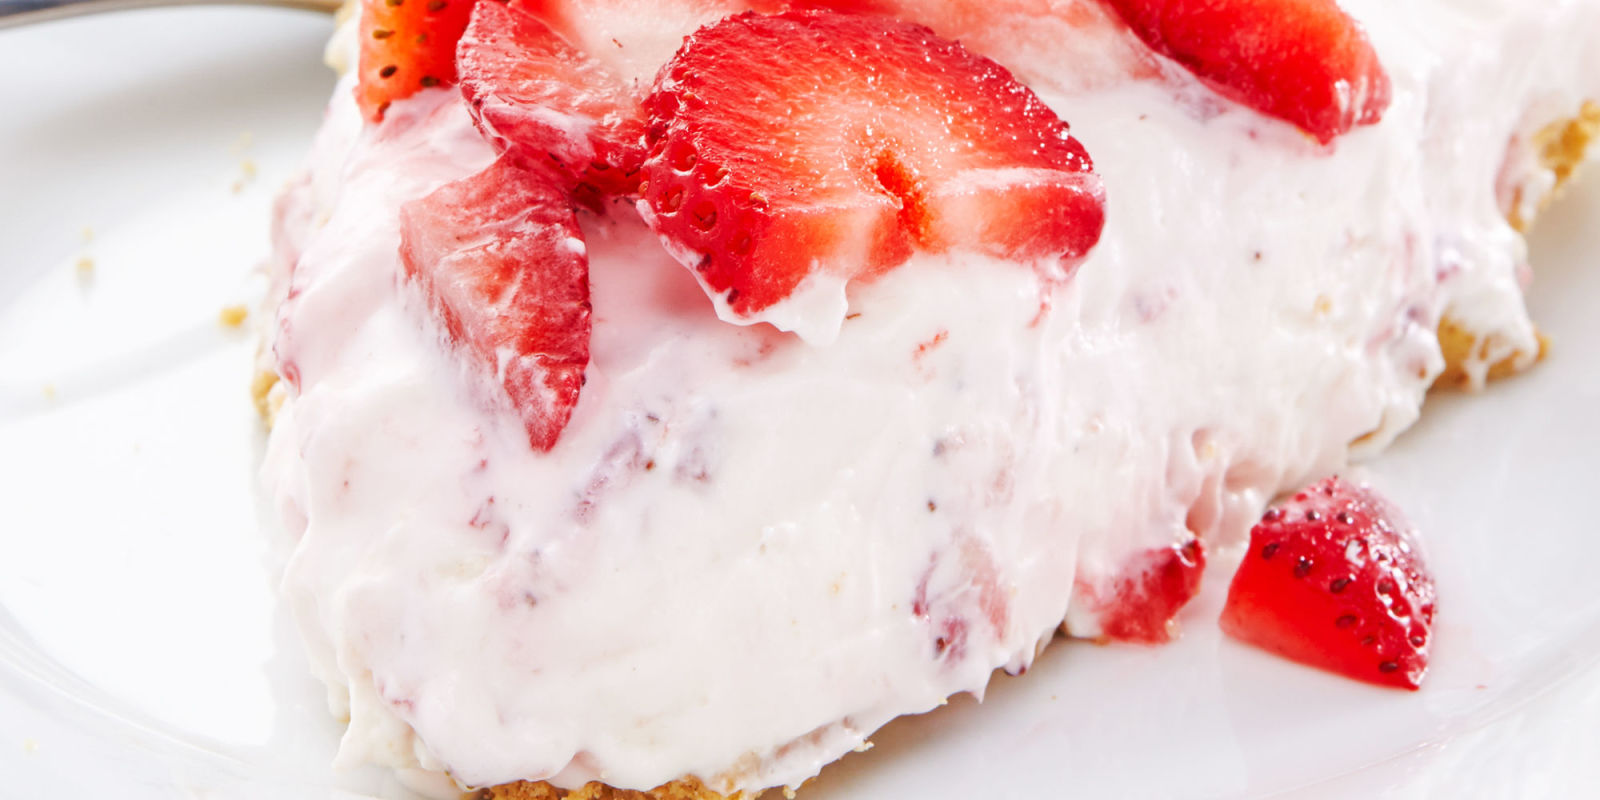 No Bake Strawberry Cheesecake Recipe - How to Make No Bake Strawberry ...